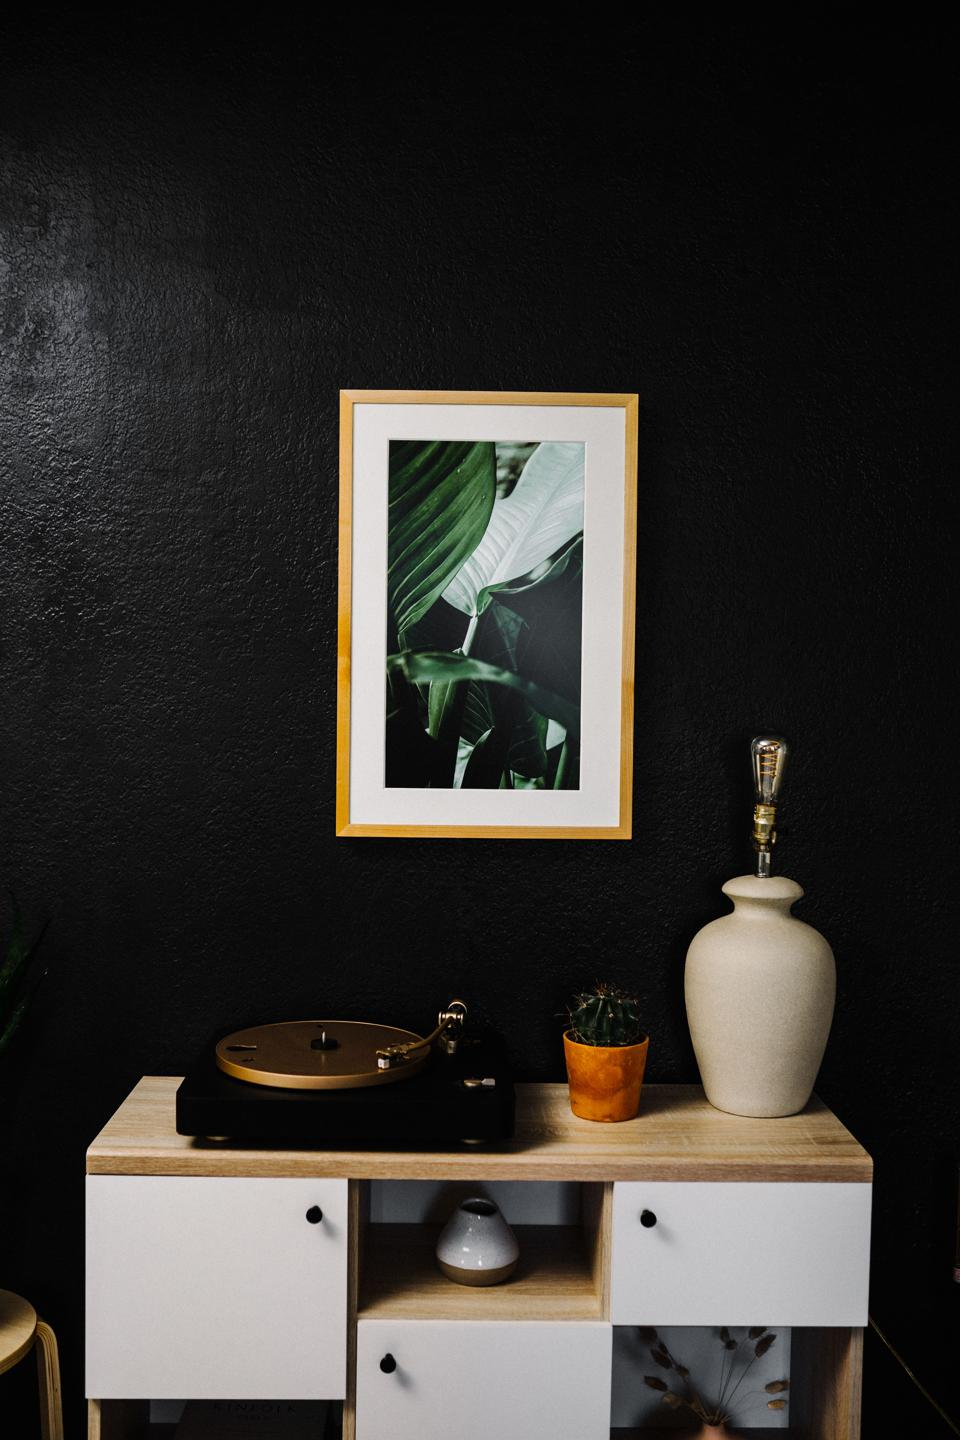 Canvia's realistic art display seamlessly blends with decor like regular wall art and yet changes every day to provide a different mood and interior design themes